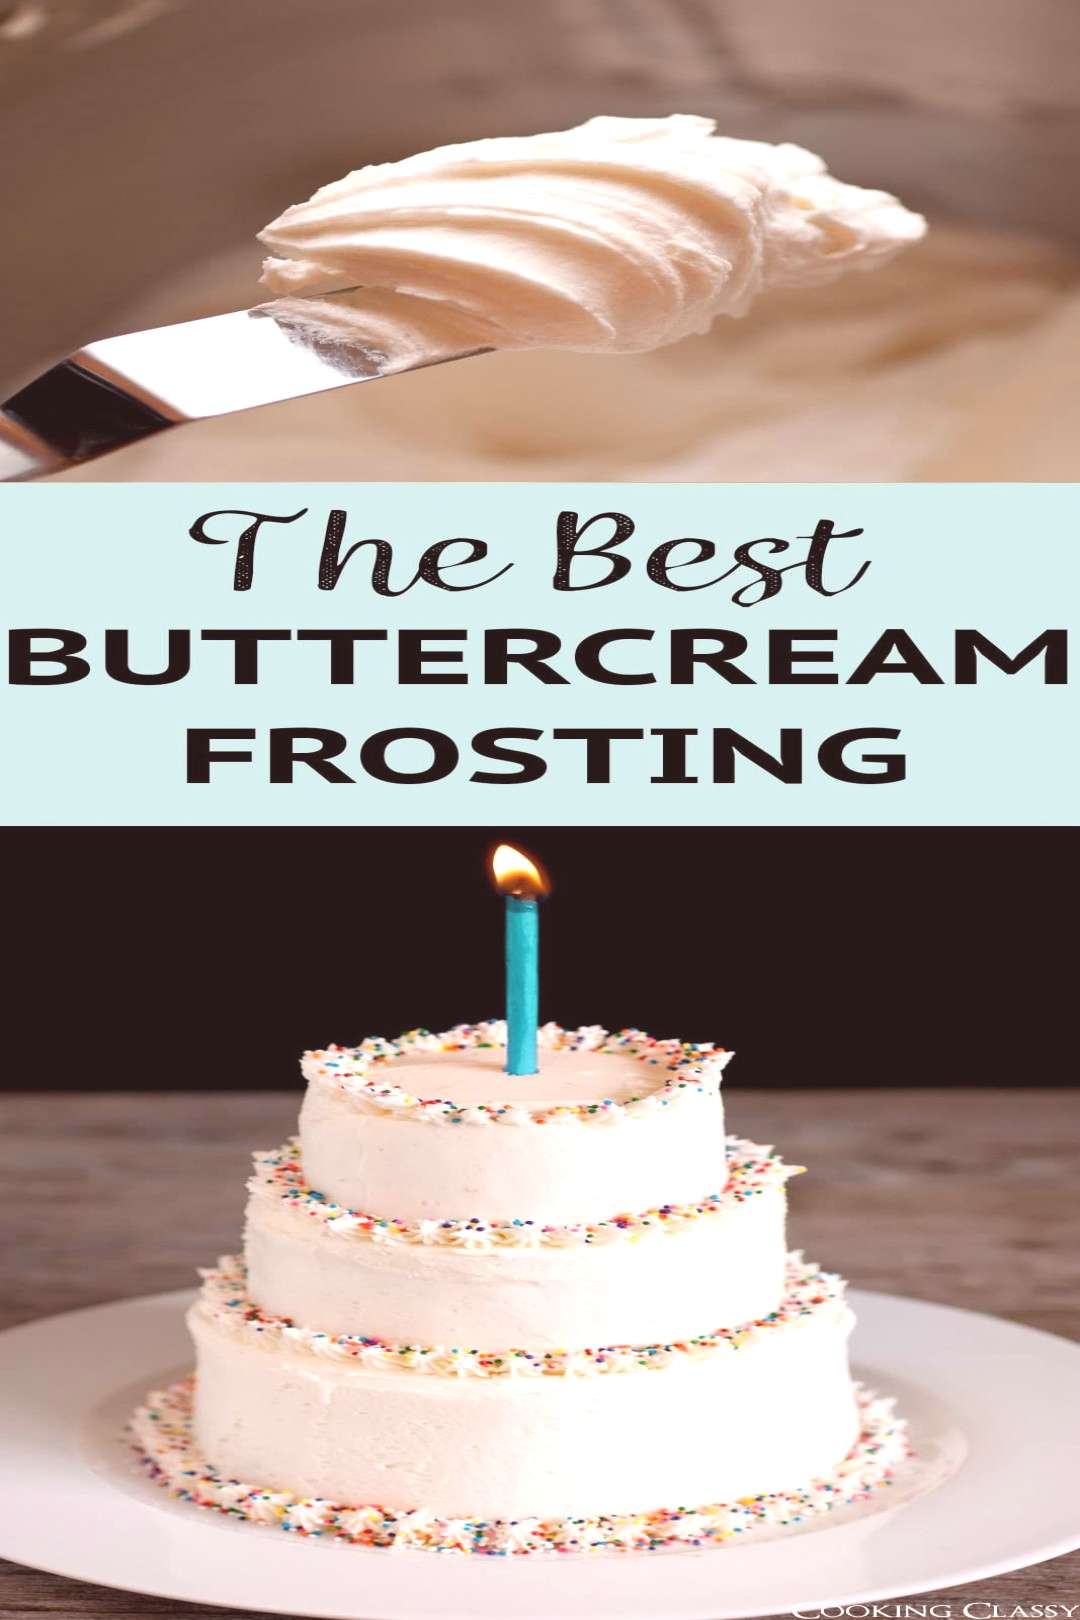 This is without a doubt, the BestButtercream Frosting recipe EVER! What sets this recipe apart is